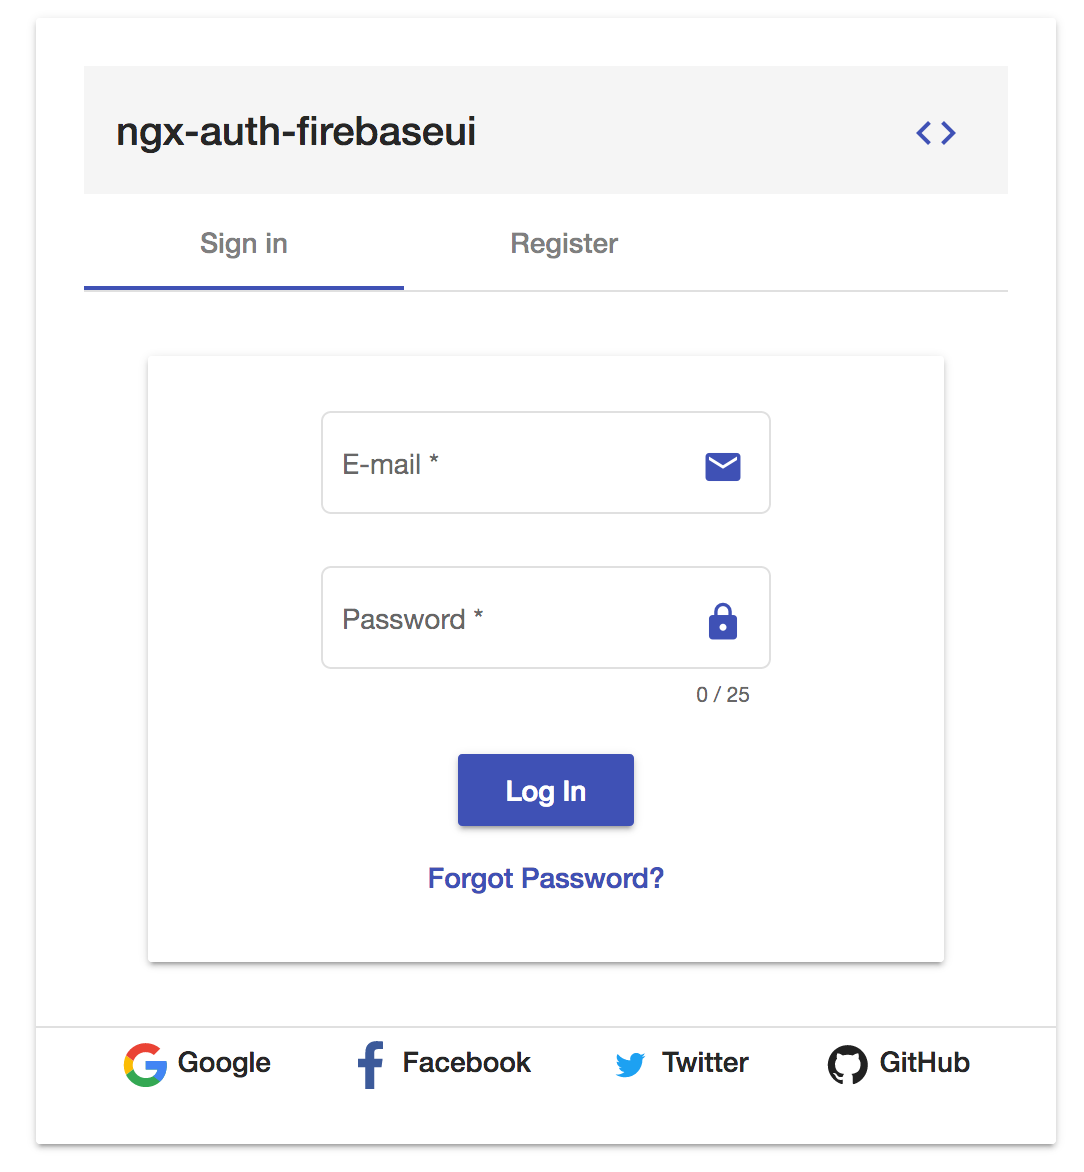 ngx-auth-firebaseui sign in